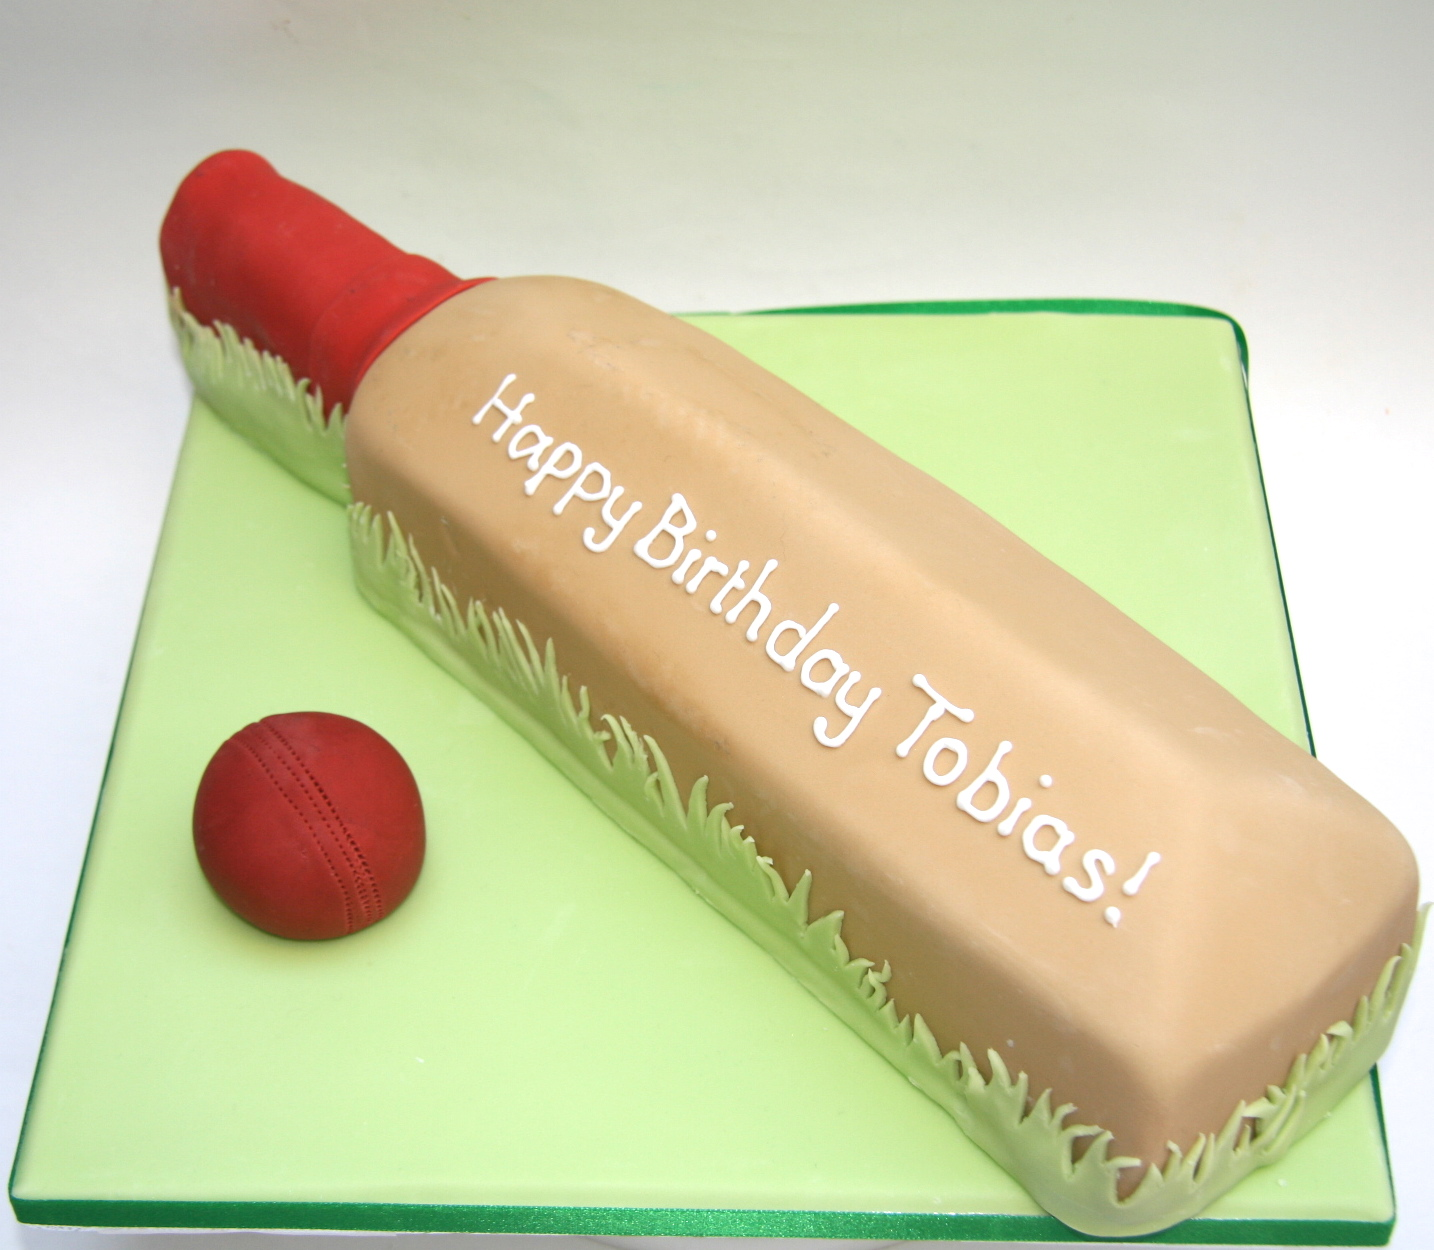 Cricket Bat Cake Images : img_4537.jpg